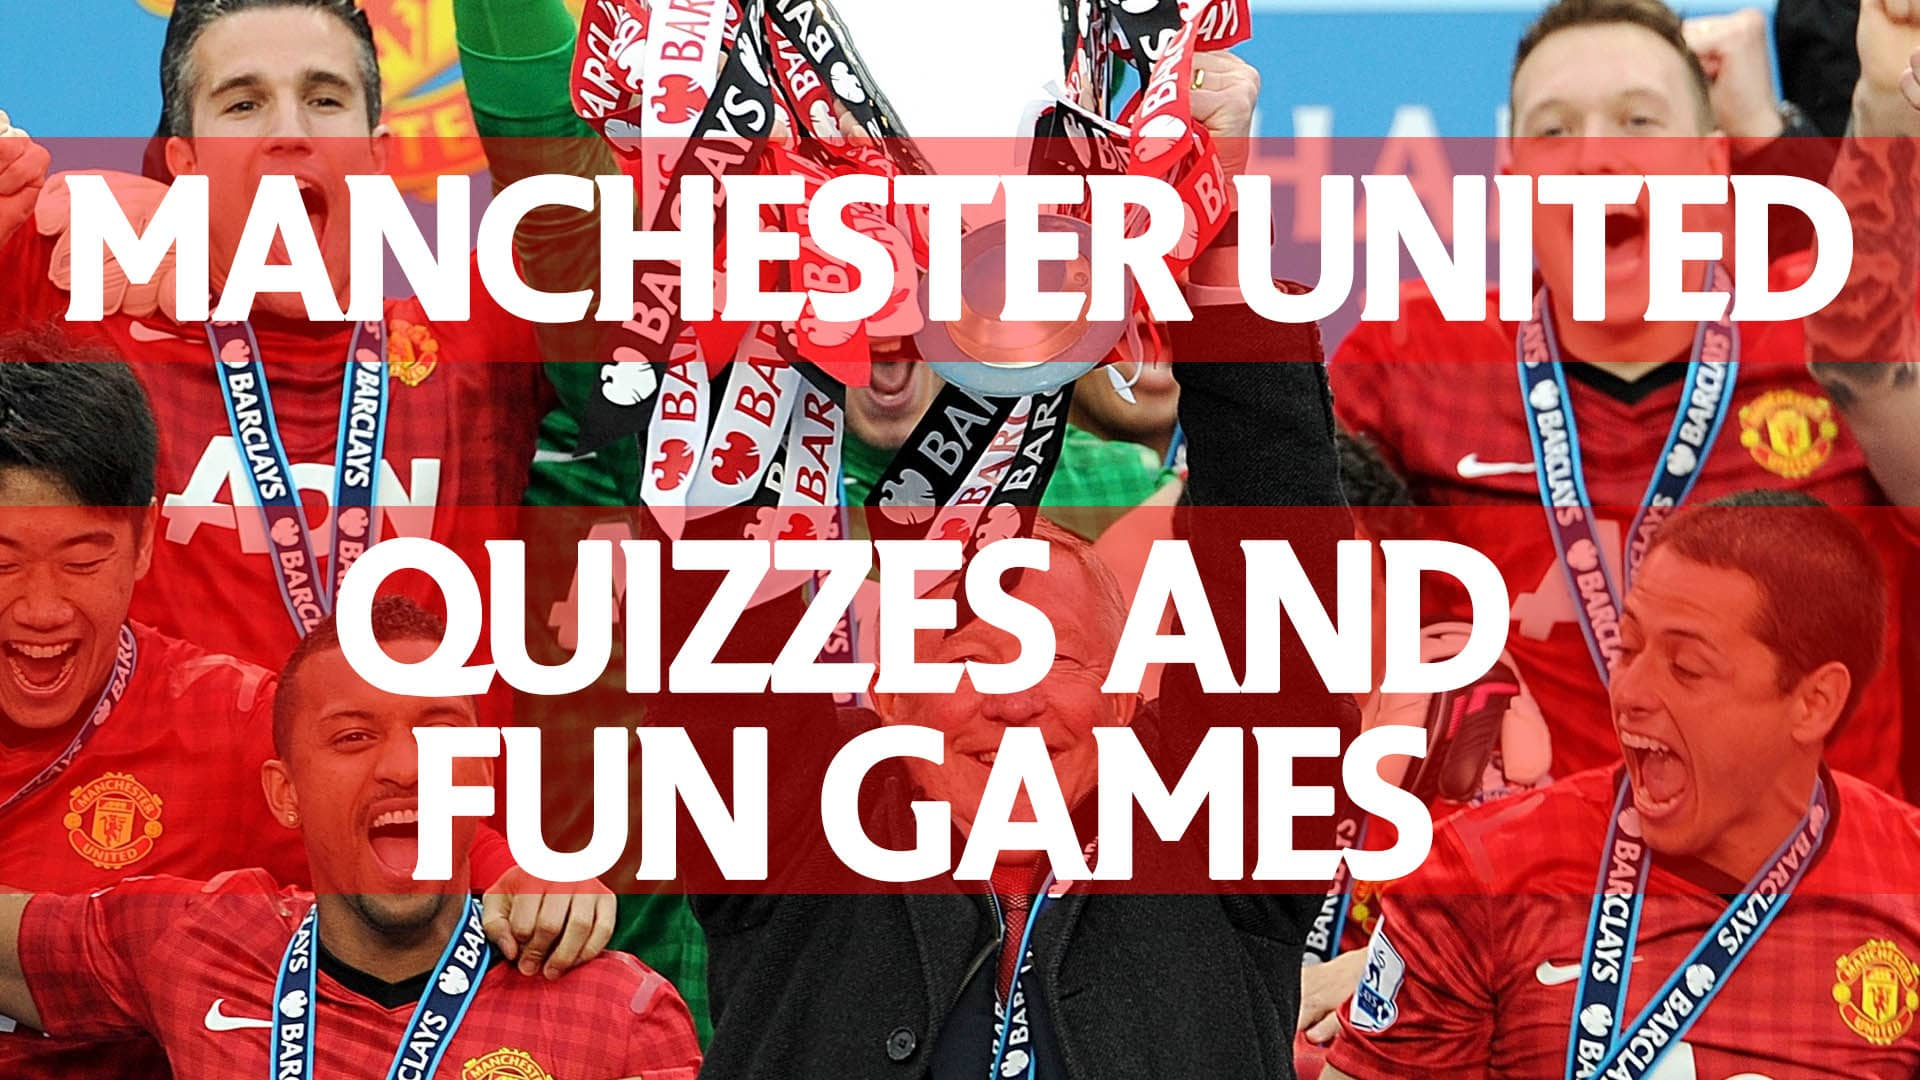 Manchester United Quizzes and Fun Games